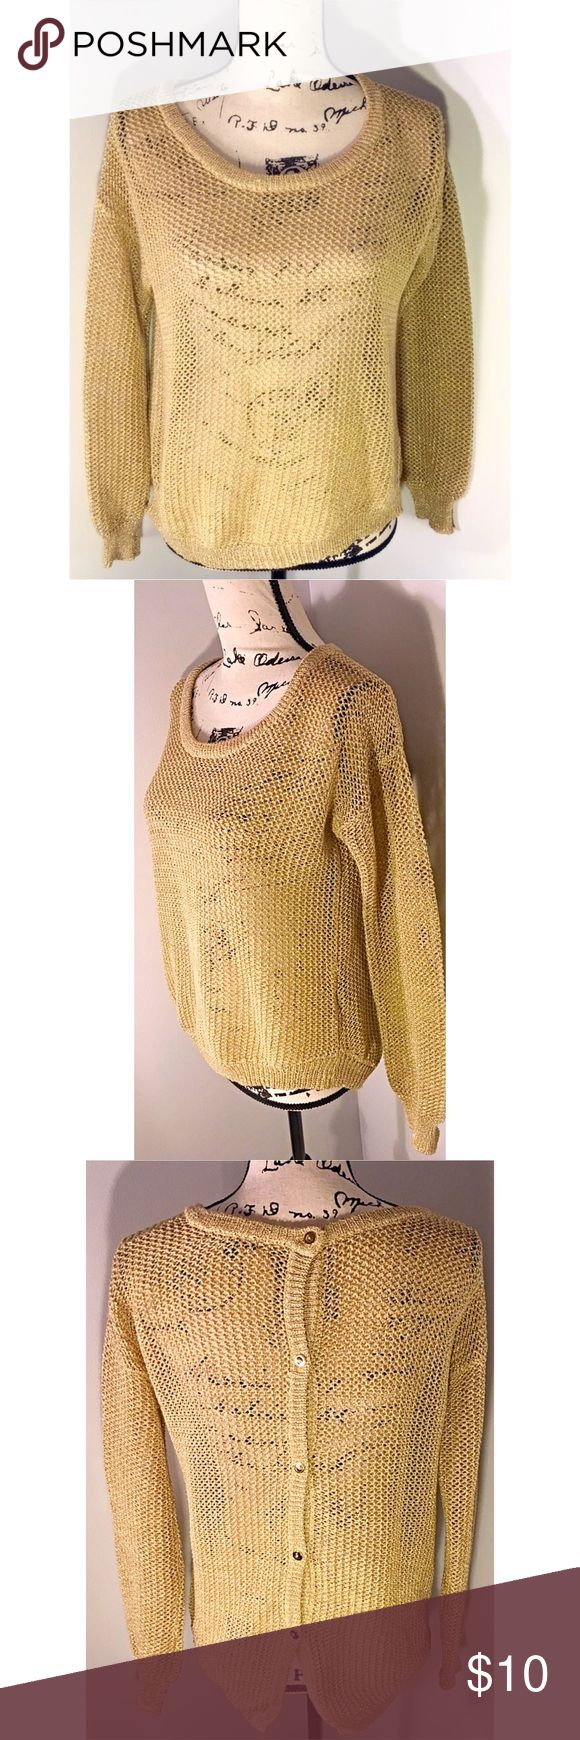 ❤️Sexy Gold Sweater | Size S ❤️ Beautiful gold sweater ❤️ that buttons down in the back. Excellent Condition 😍 Sexy and practical for winter months. Pairs well with a cami underneath. Size S.  Make this ☝🏾️treasure yours today ☺️. Don't be scared  to make an offer, you never know unless you try. Bundle multiple items for the best savings. Pay one low price for shipping 🎁! Thanks for stepping into my closet  😘 Sweaters